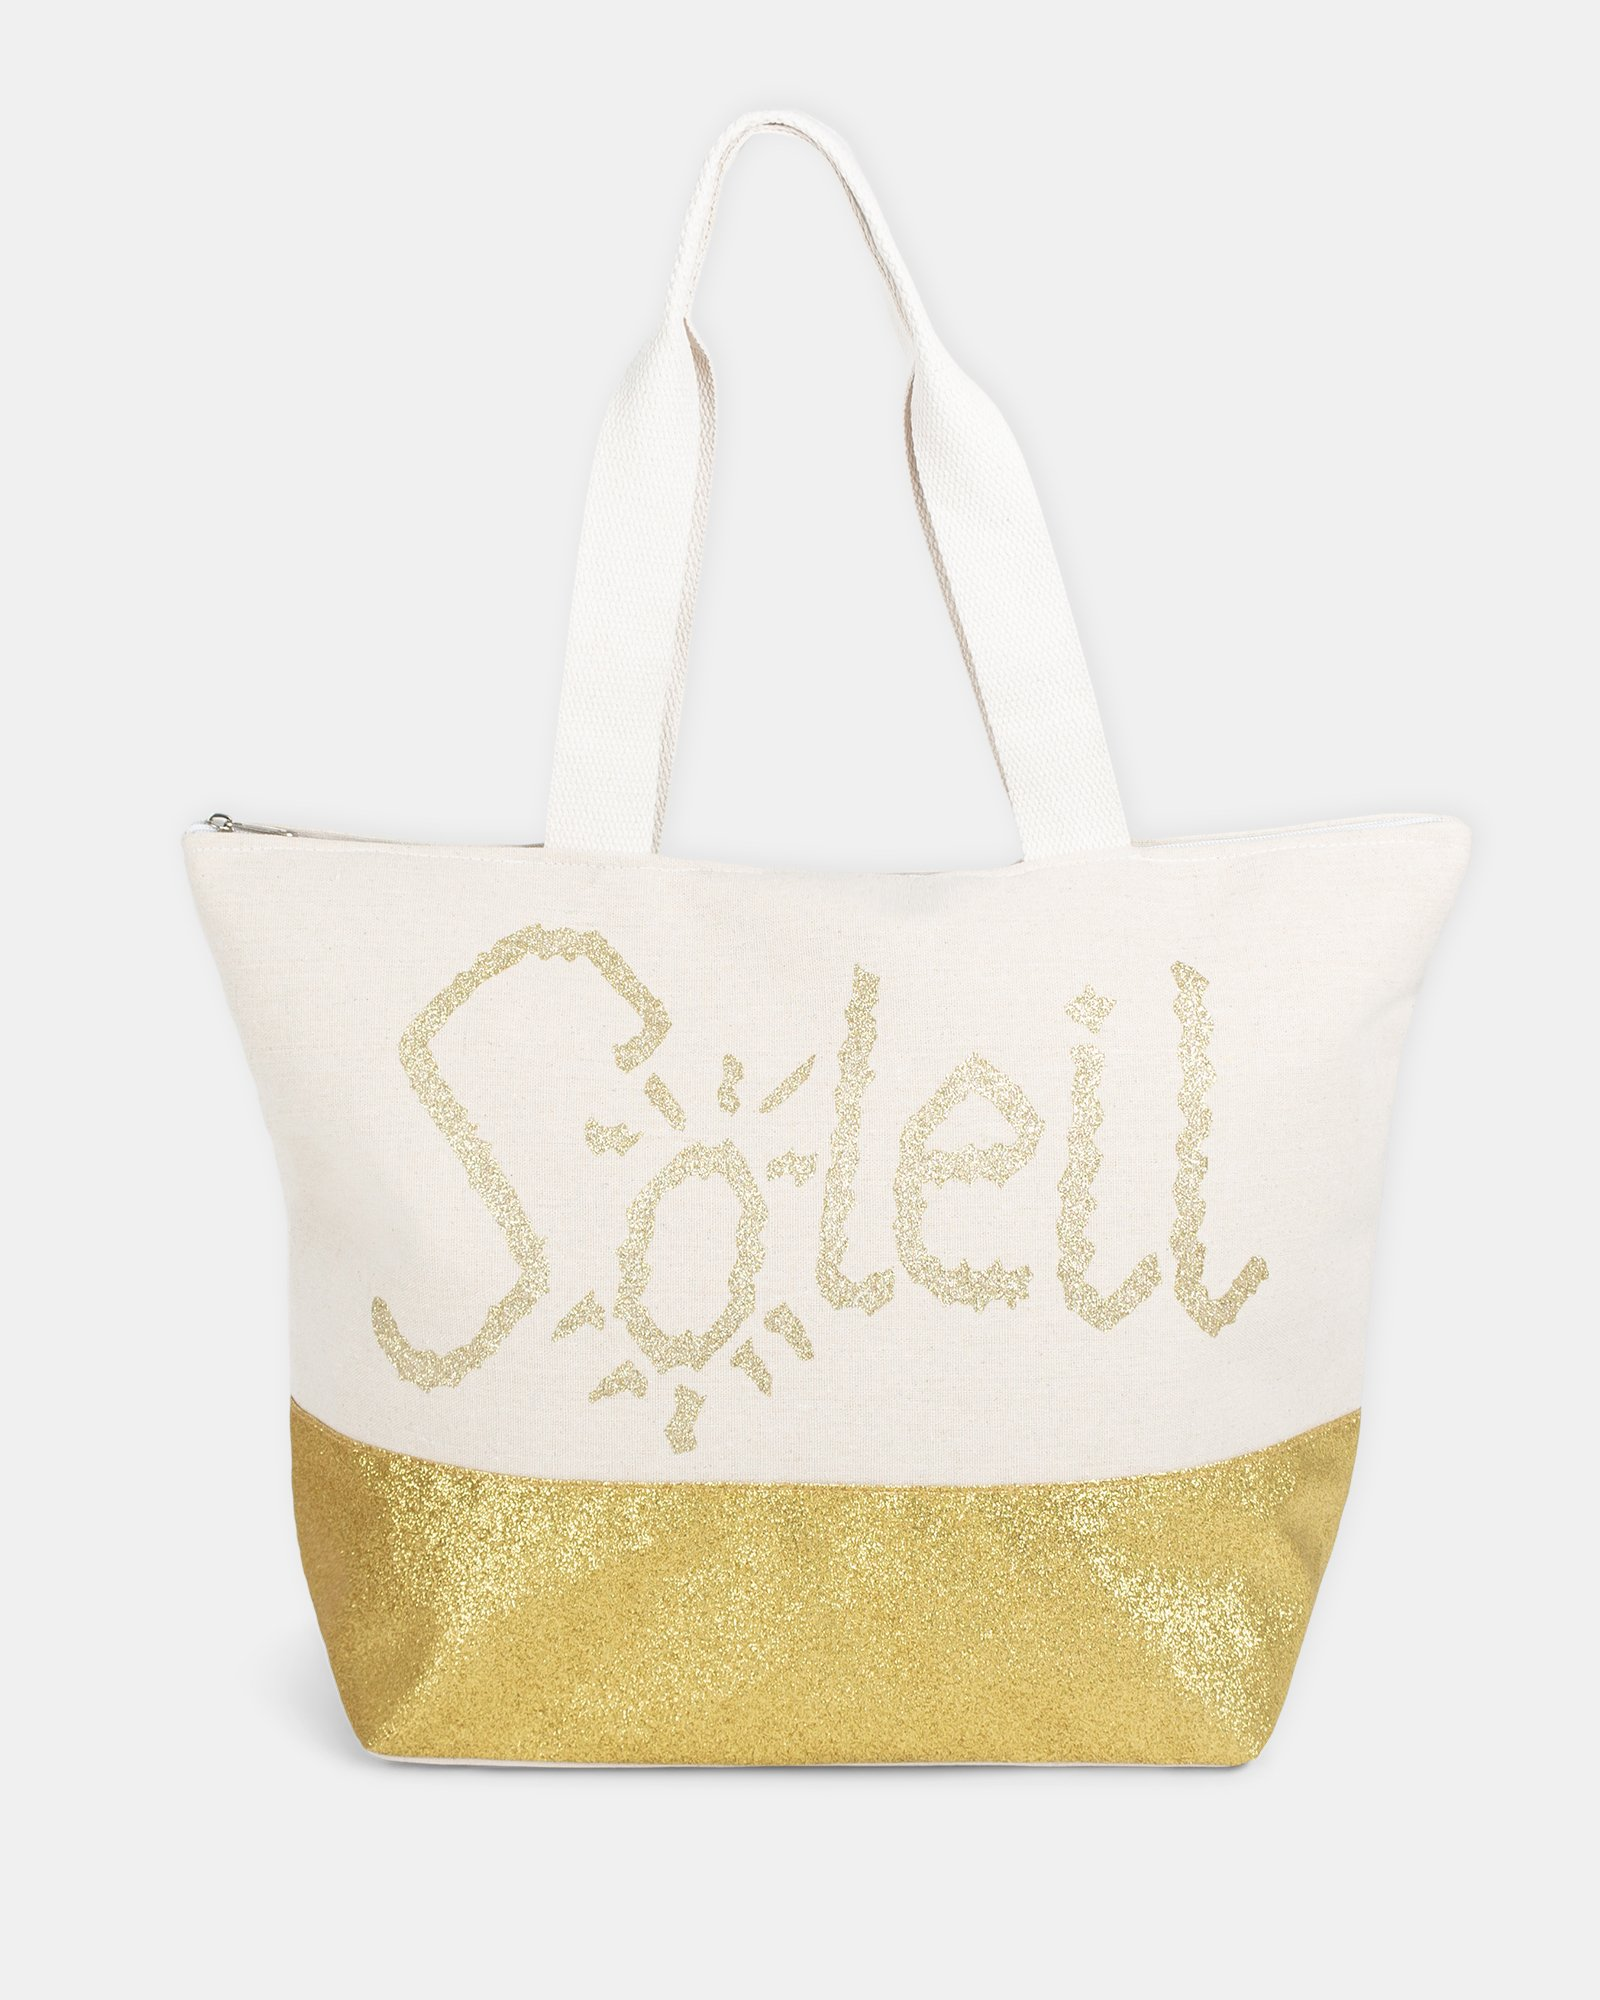 Aloha - Beach Tote bag (SOLEIL) with Main zippered compartment - Gold - Joanel - Zoom